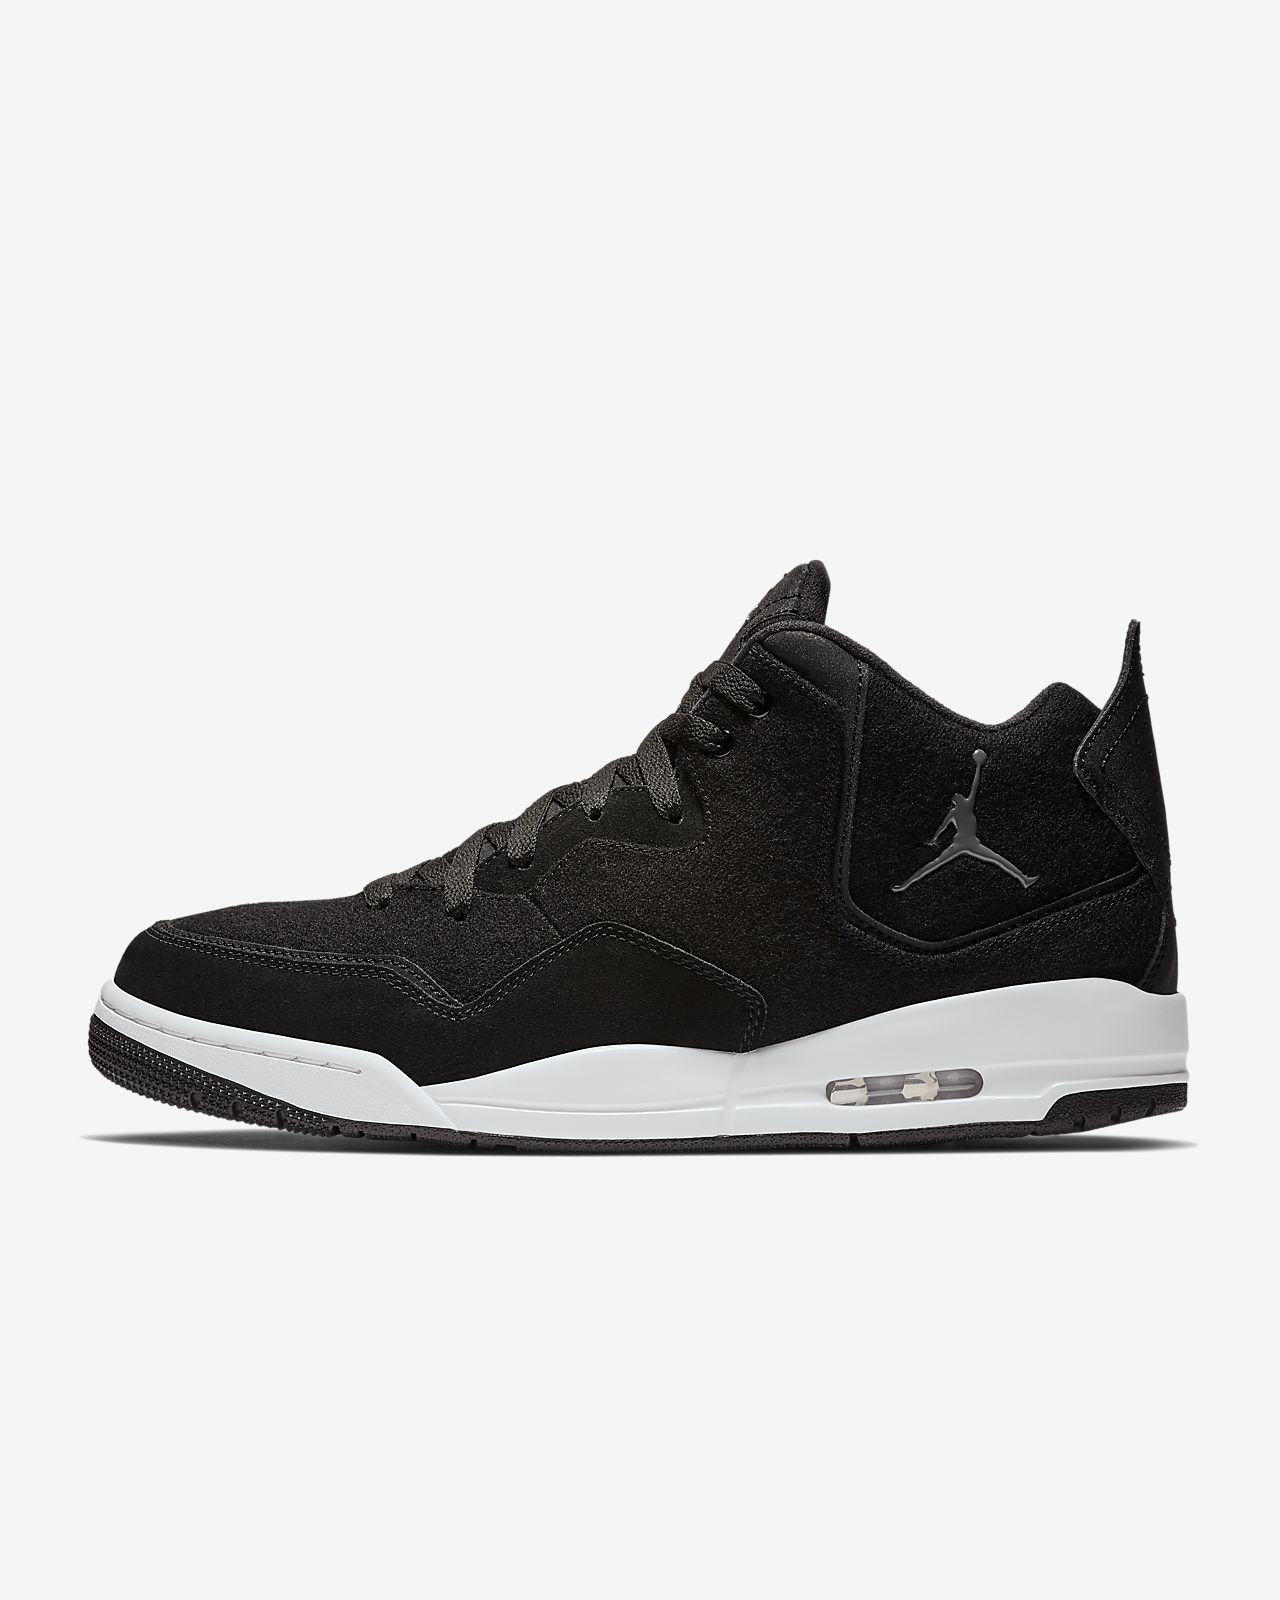 4fc73673c4c Jordan Courtside 23 Men s Shoe. Nike.com CA